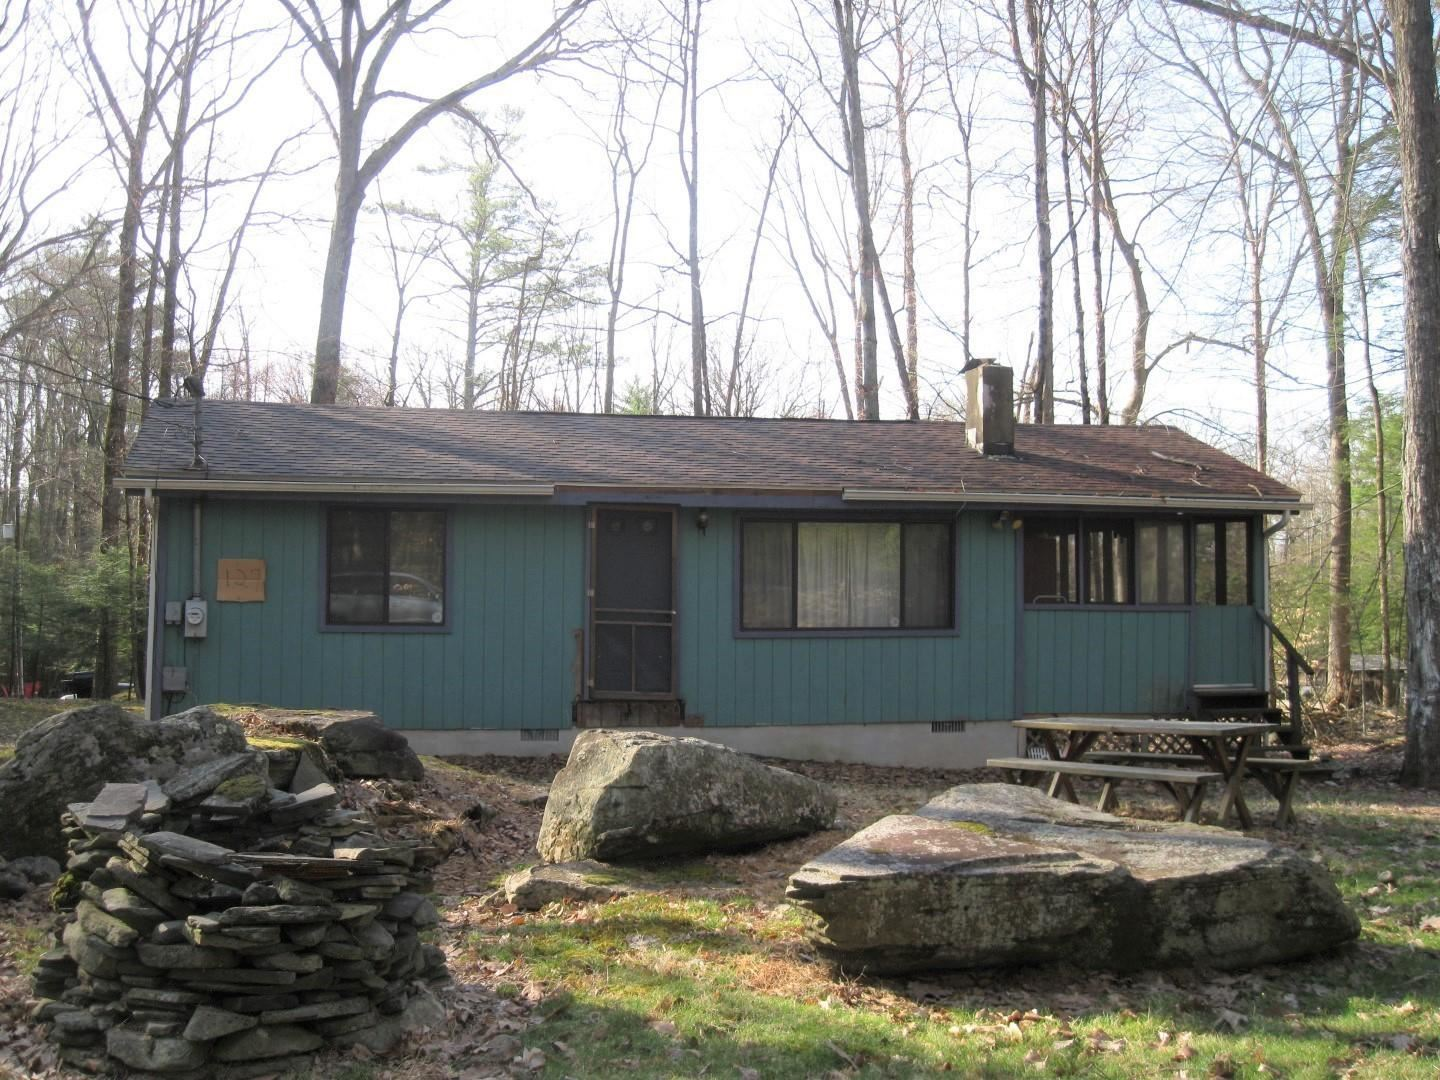 Photo of 127 Pine Hill Dr, Lakeville, PA 18438 (MLS # 21-1116)